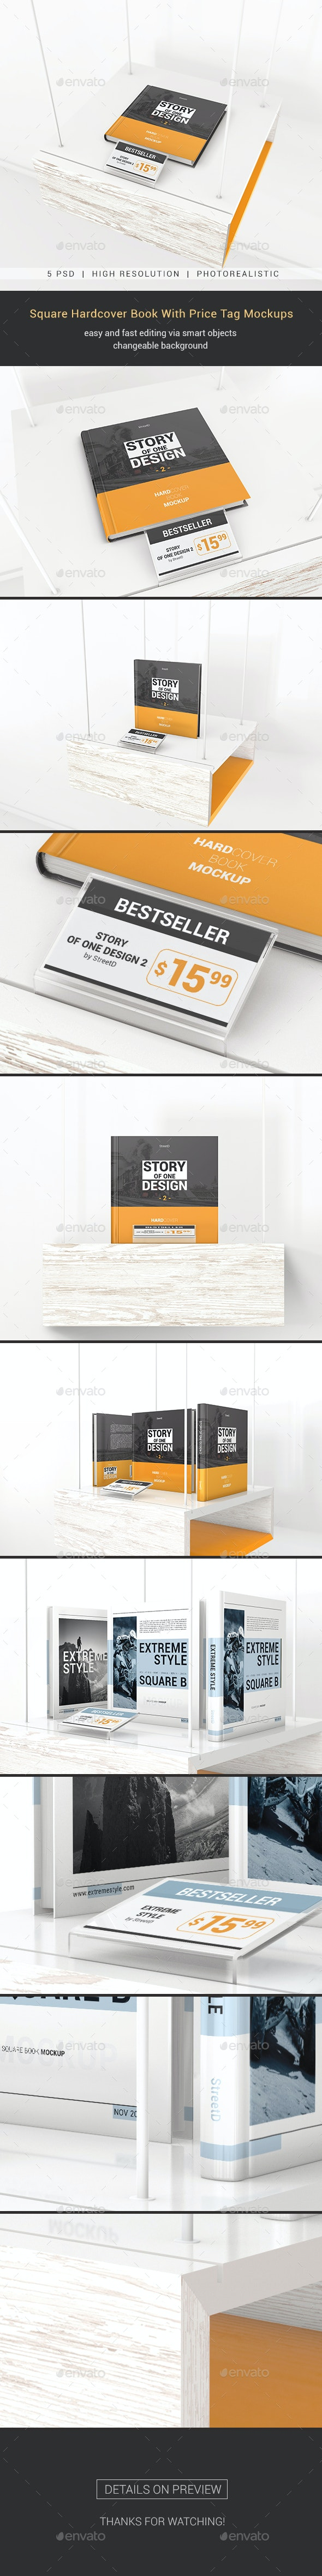 Square Hardcover Book With Price Tag Mockups - Books Print